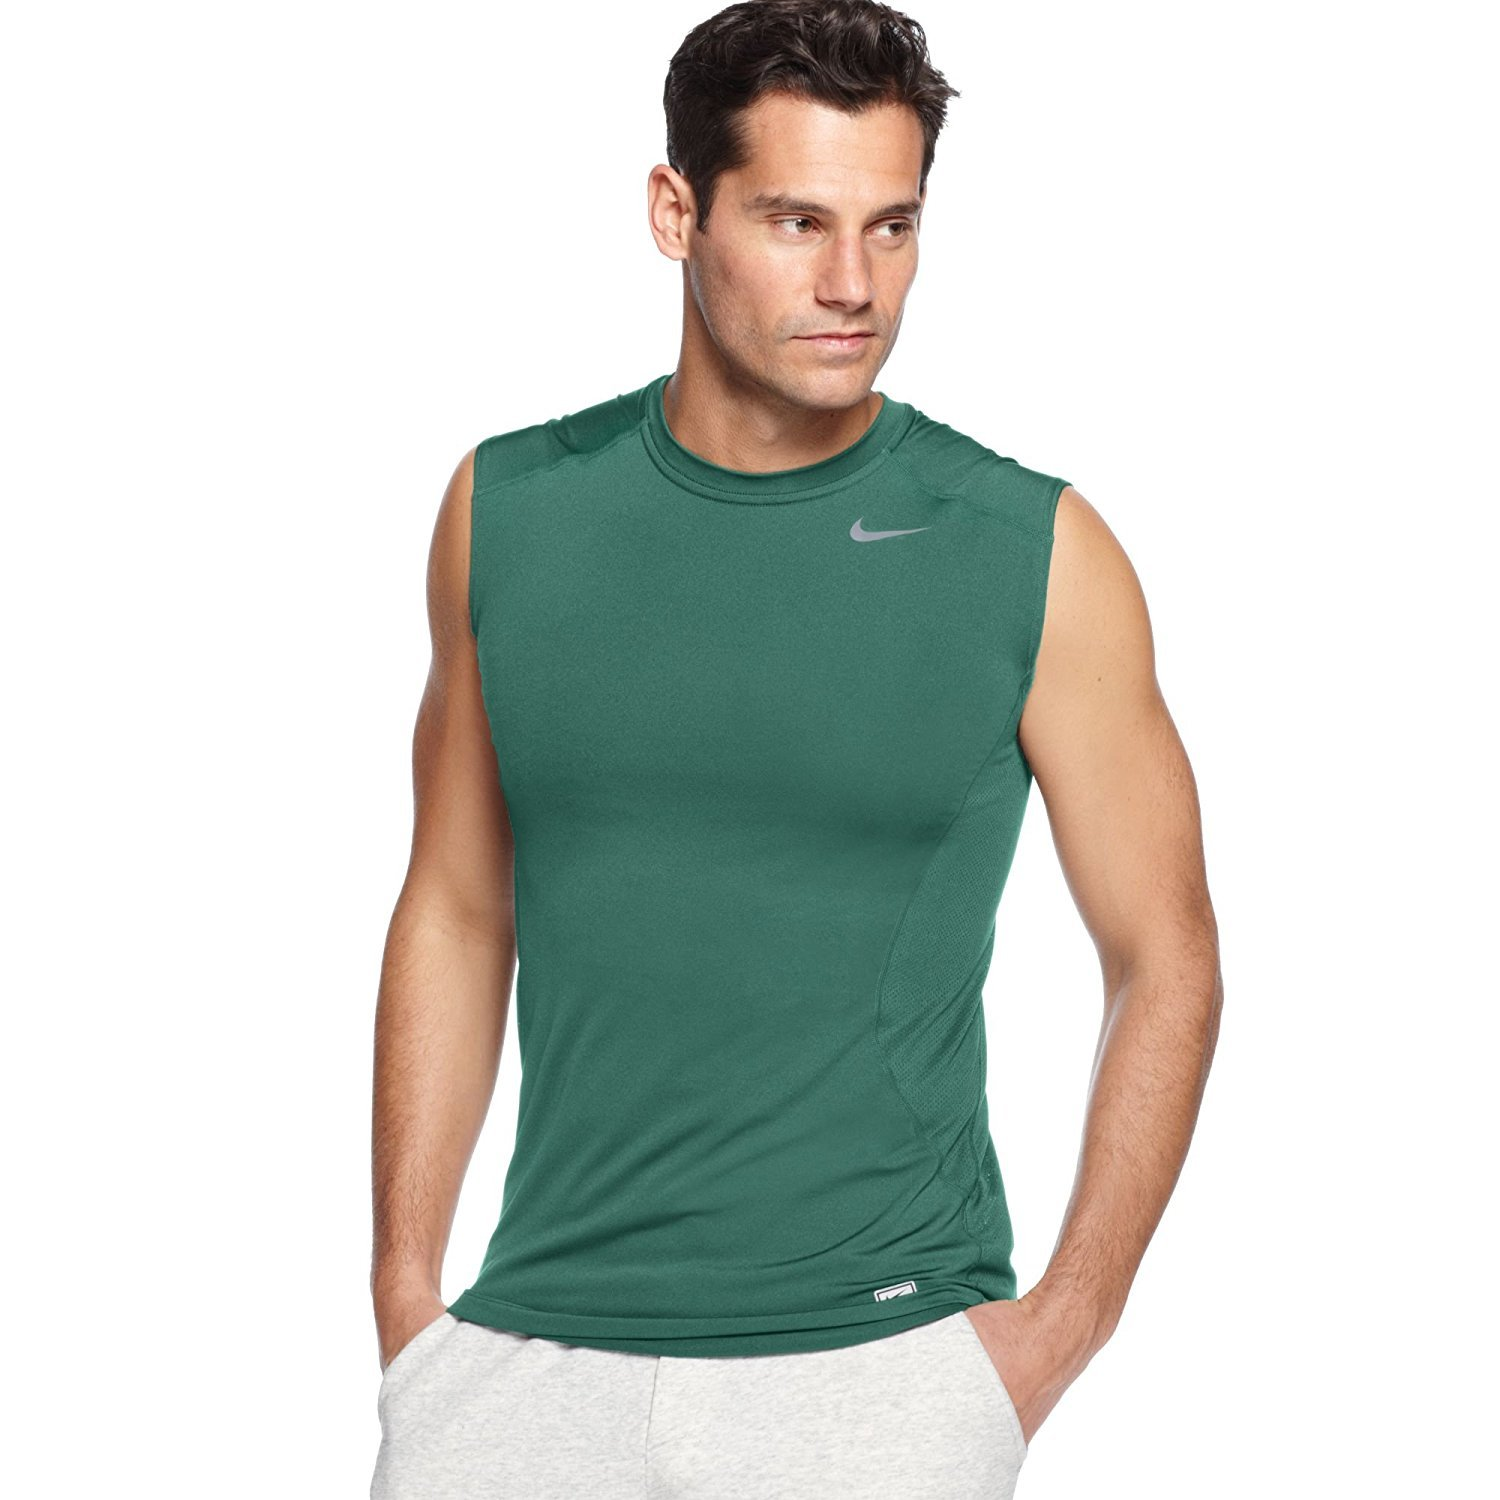 0e575e24e9321 92% Polyester 8% Spandex Dri-FIT fabric helps keep you dry and comfortable  Flat seams move smoothly against the skin Ergonomic seam design follows the  ...